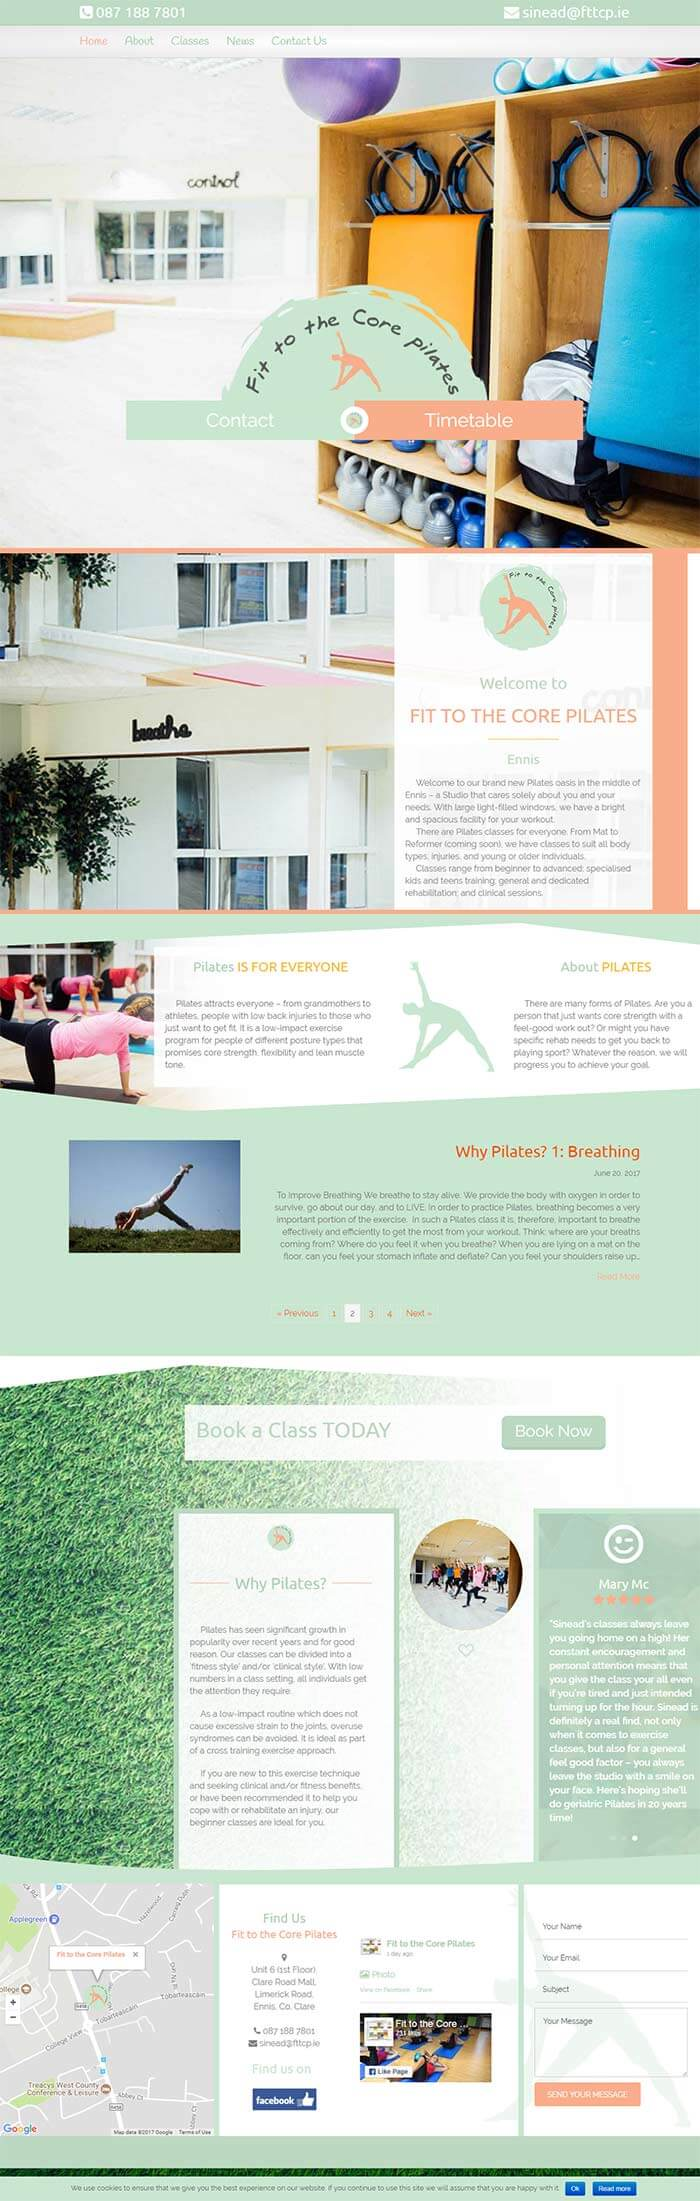 Fit to the core entire home page of website